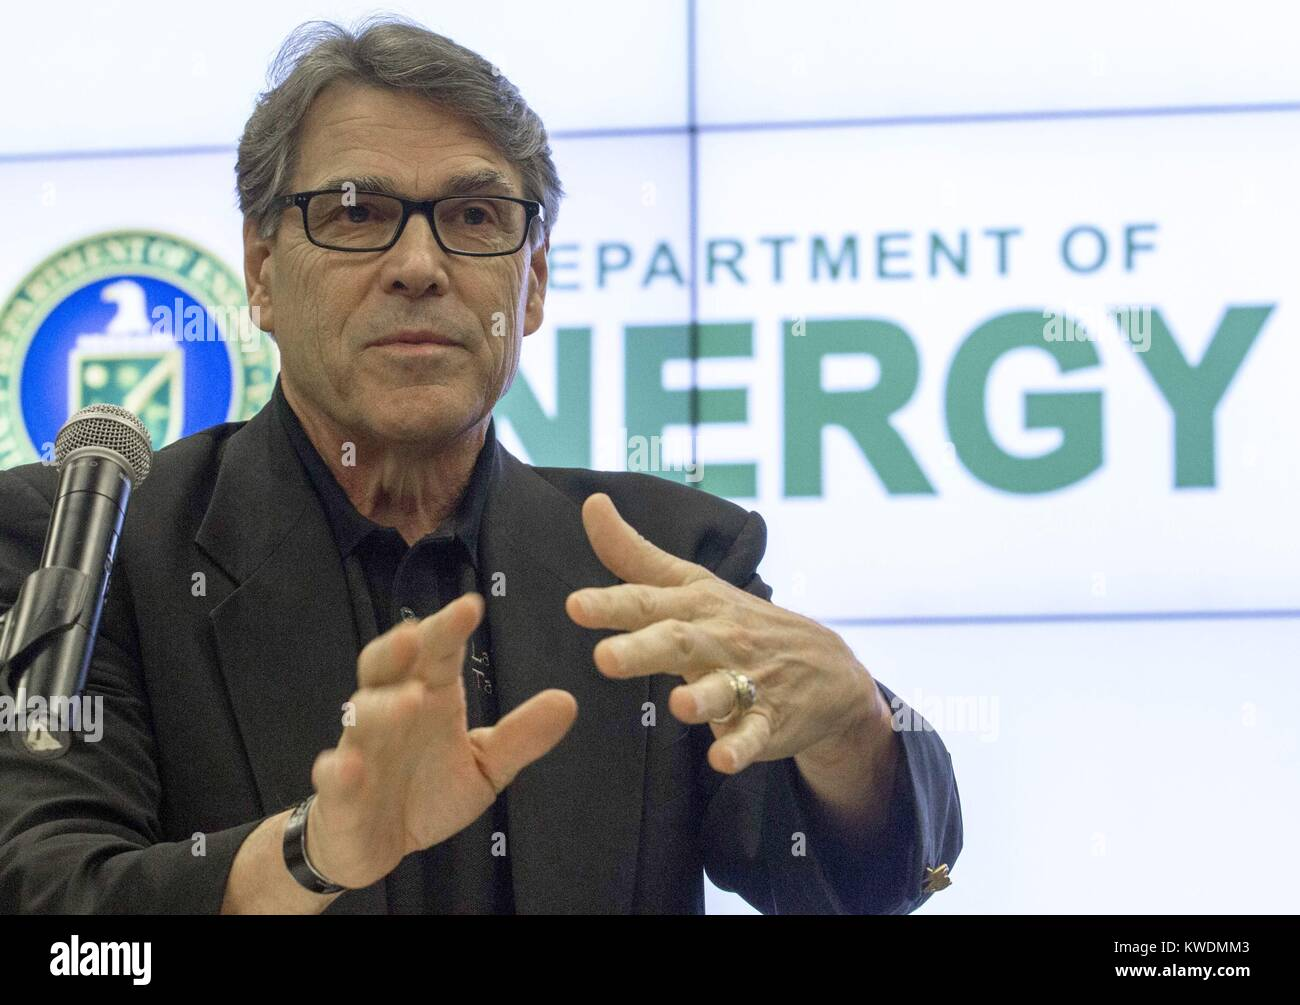 US Department of Energy Sec. Rick Perry speaking at Energy Technology Laboratory, July 7, 2017. During the 2012 Stock Photo